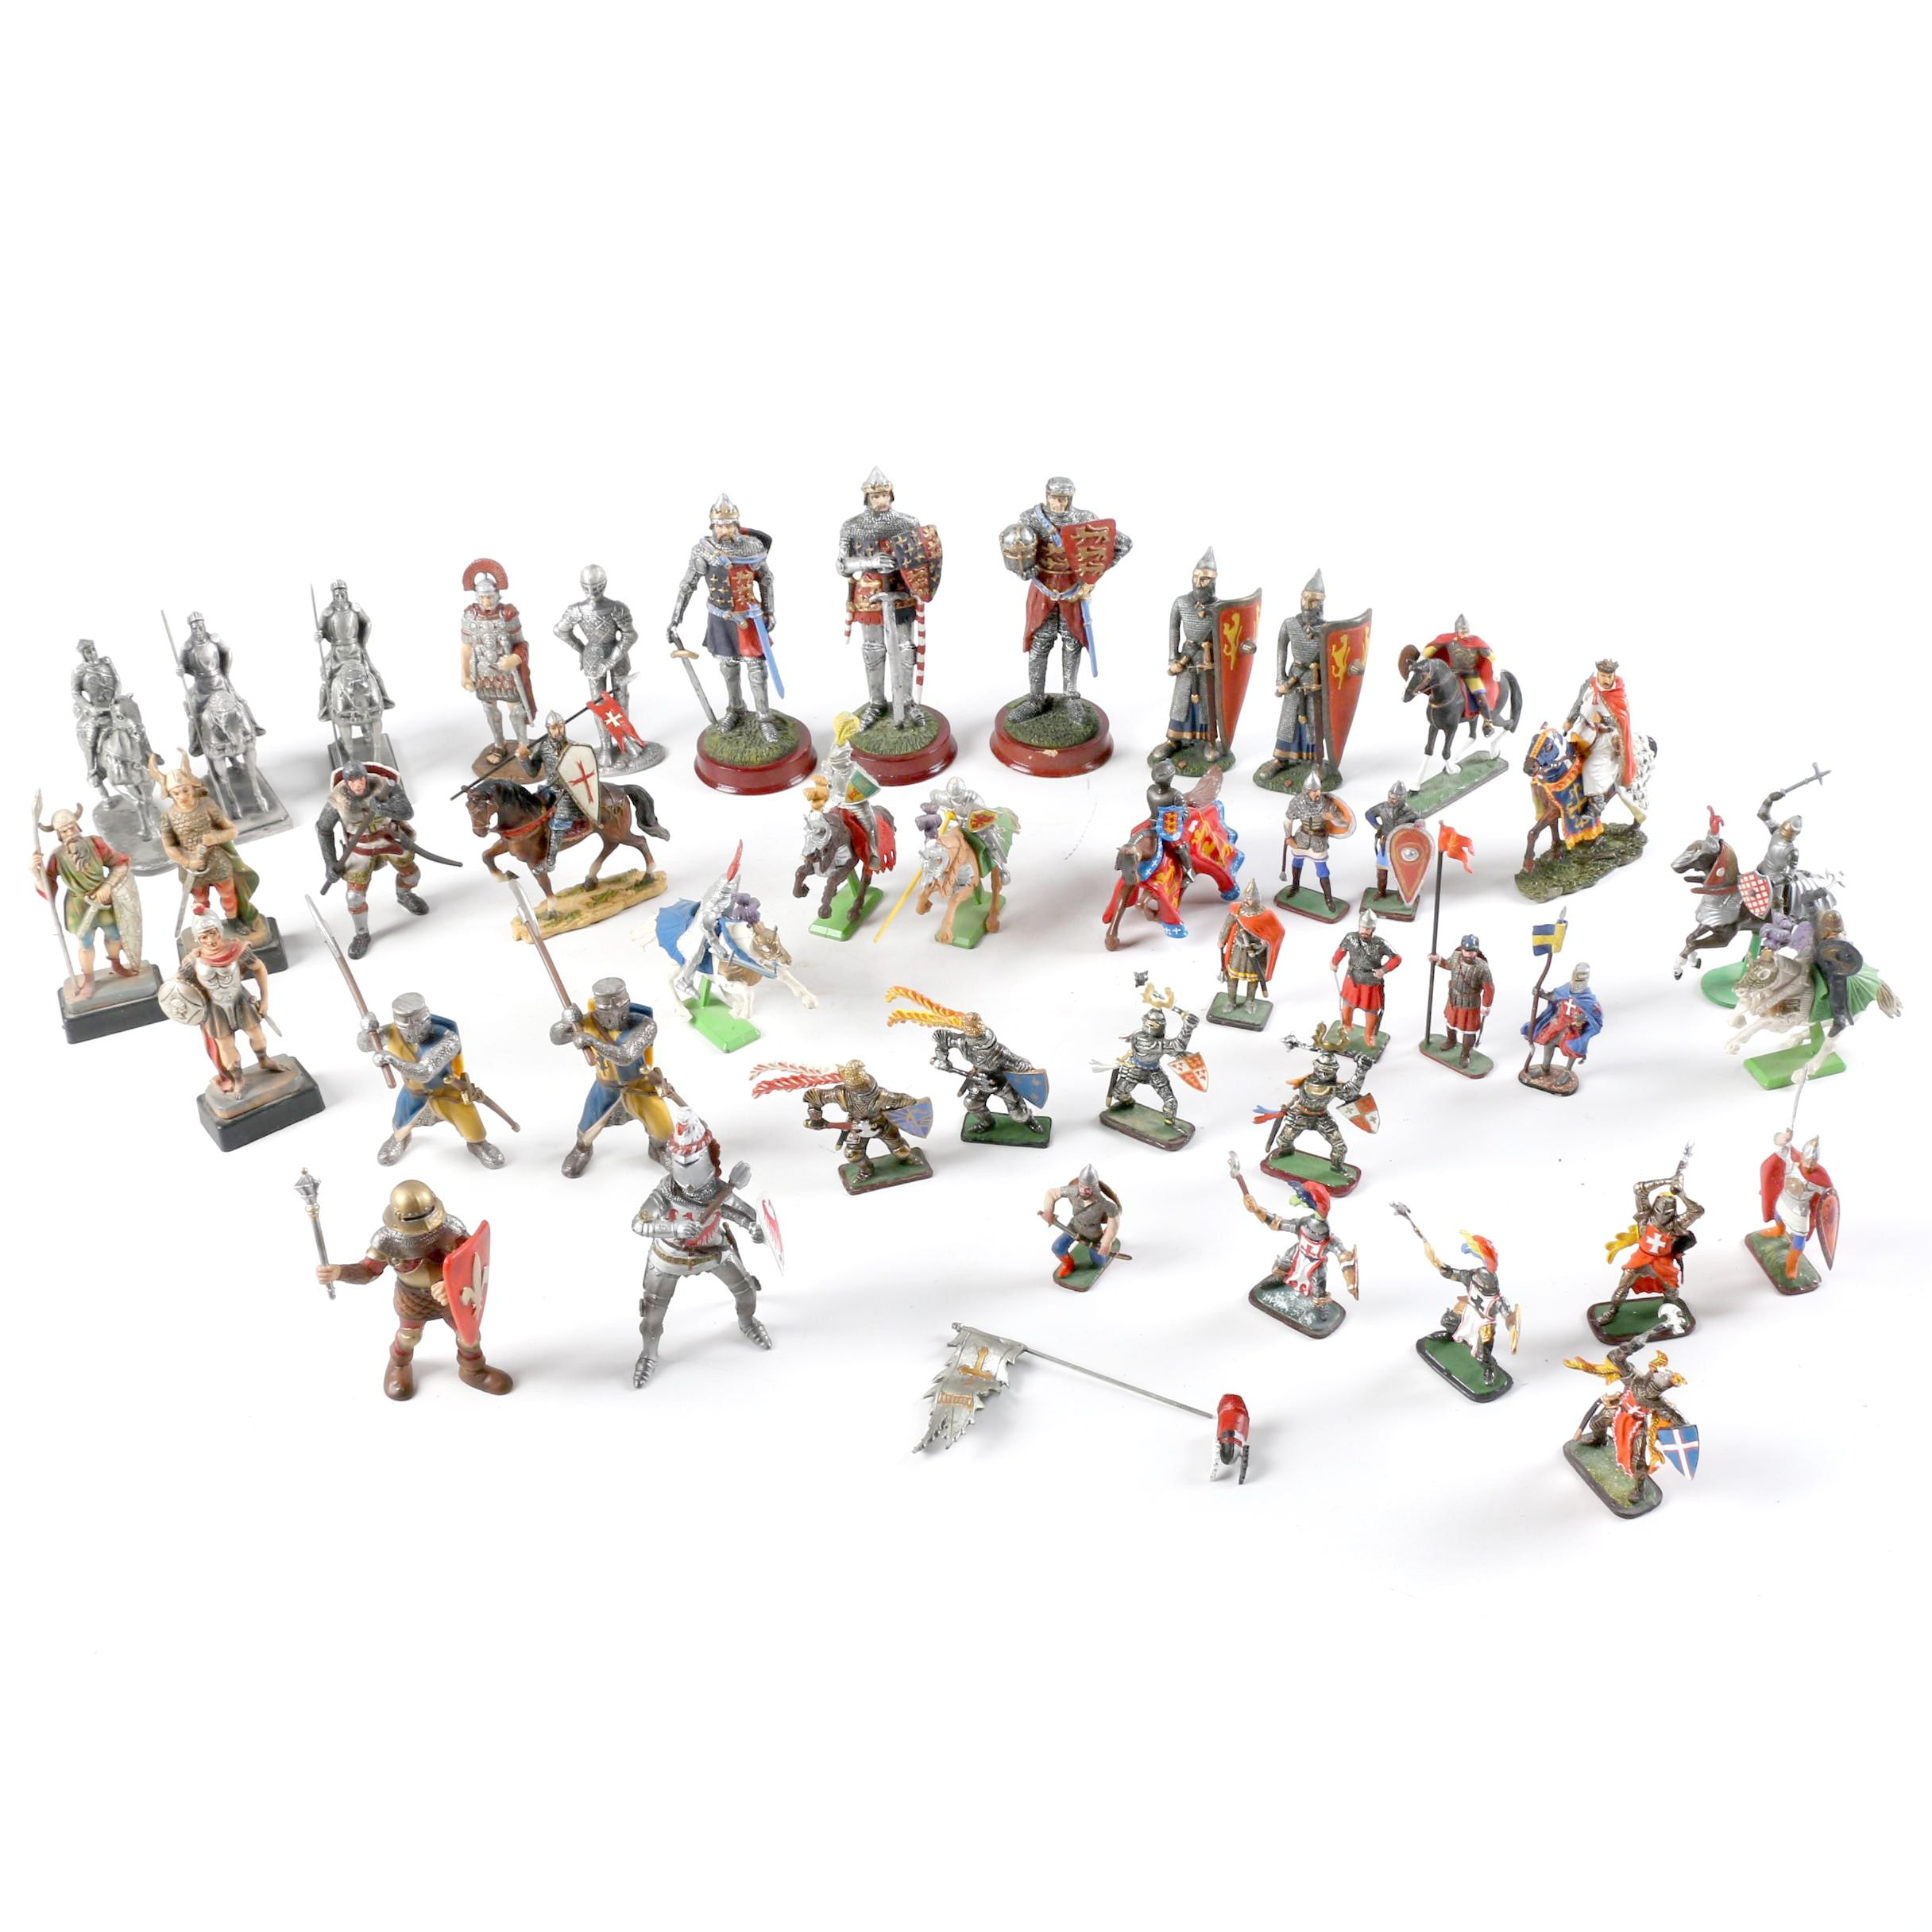 Collection of Miniature Knights and Warriors